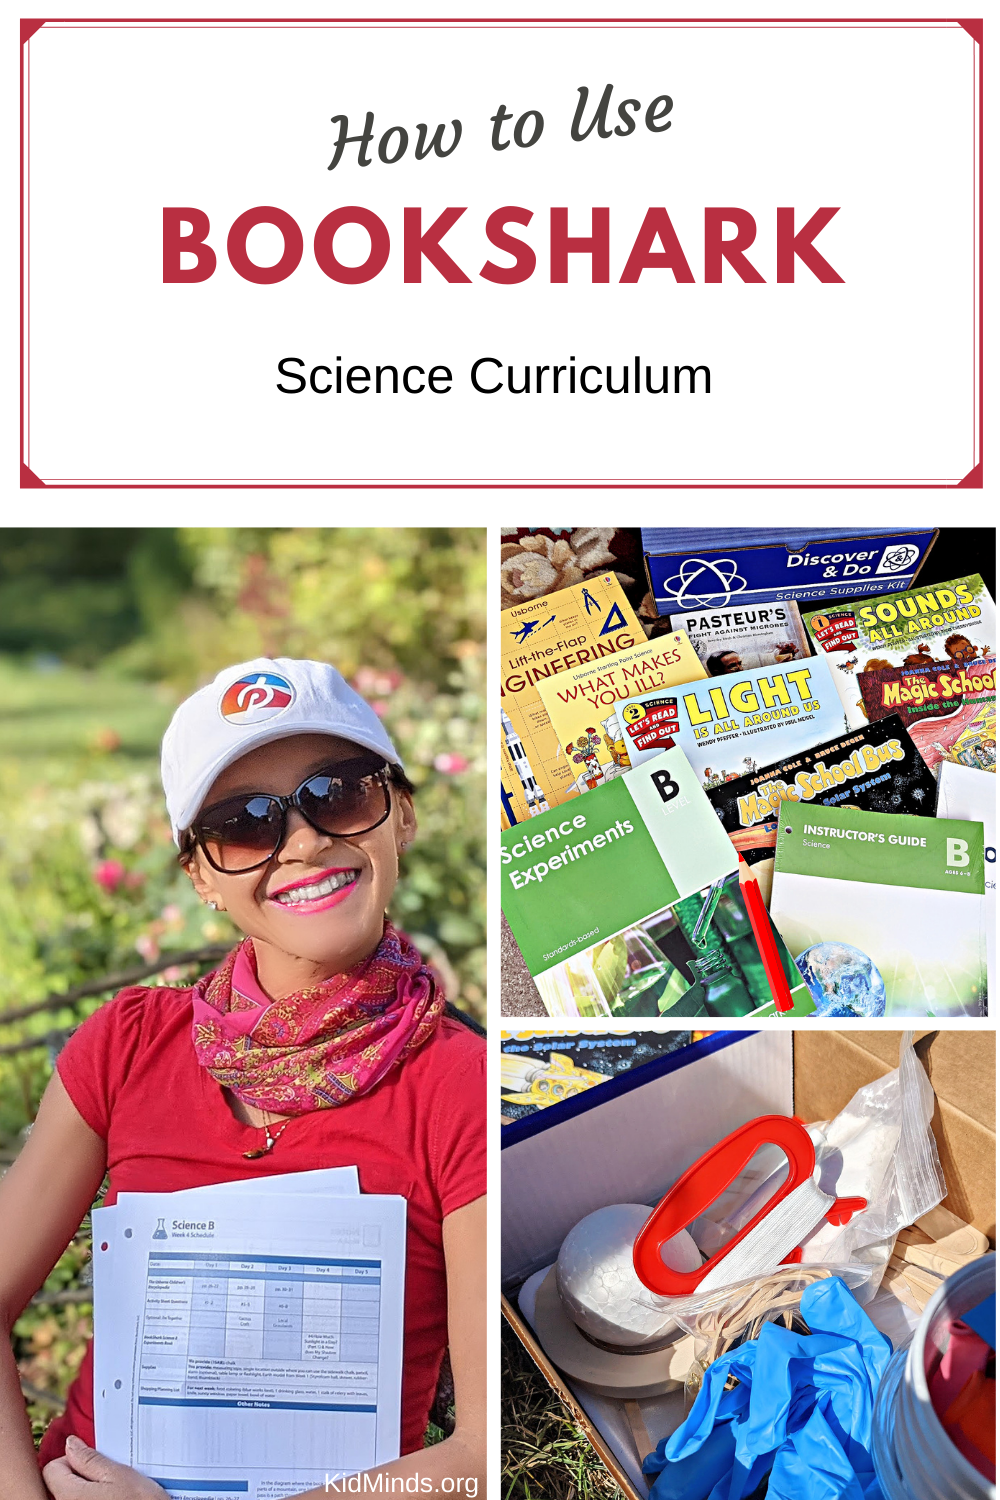 BookShark is the perfect homeschool science curriculum for your family: hands-on, literature-based, and convenient. No time to pick up science supplies for experiments? No problem. Everything is already included in the package. #science #STEAM #homeschooling